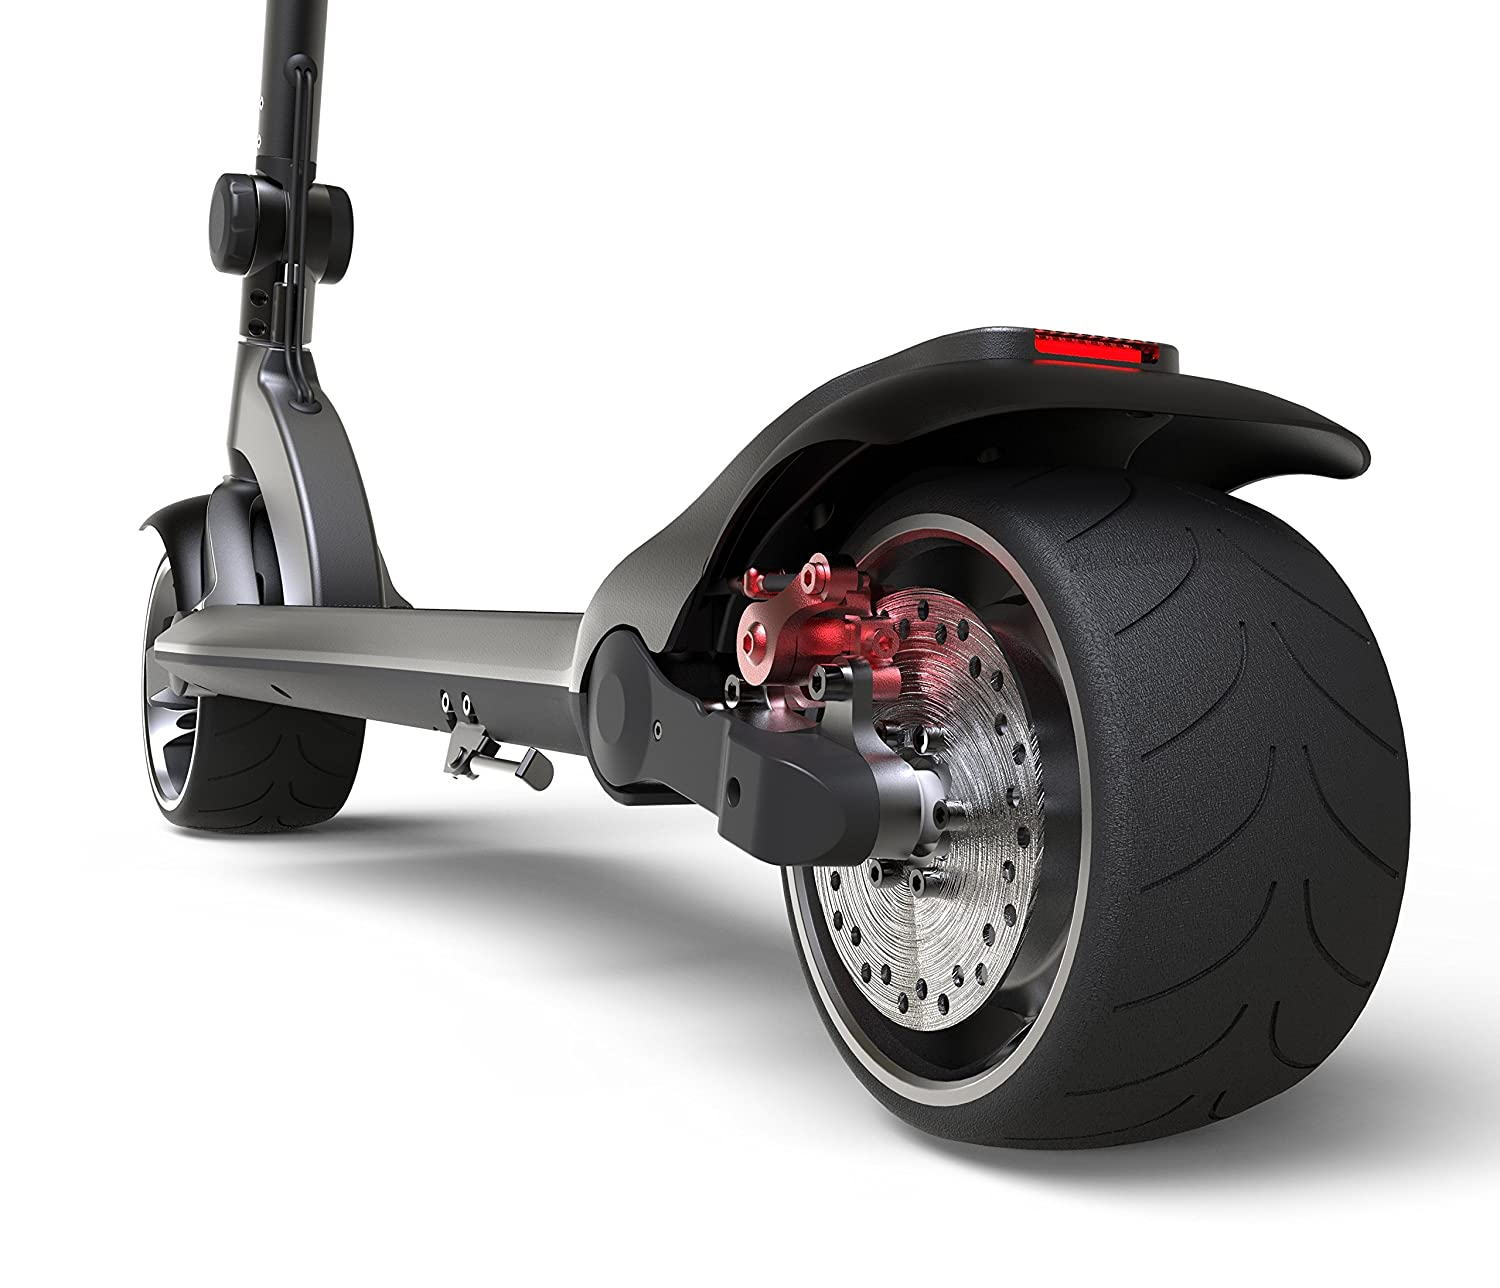 Mercane WideWheel – Powerful Electric Scooter for Adults – up to 25mph, 20 miles range, 48V, 500W single or 1000W dual motor